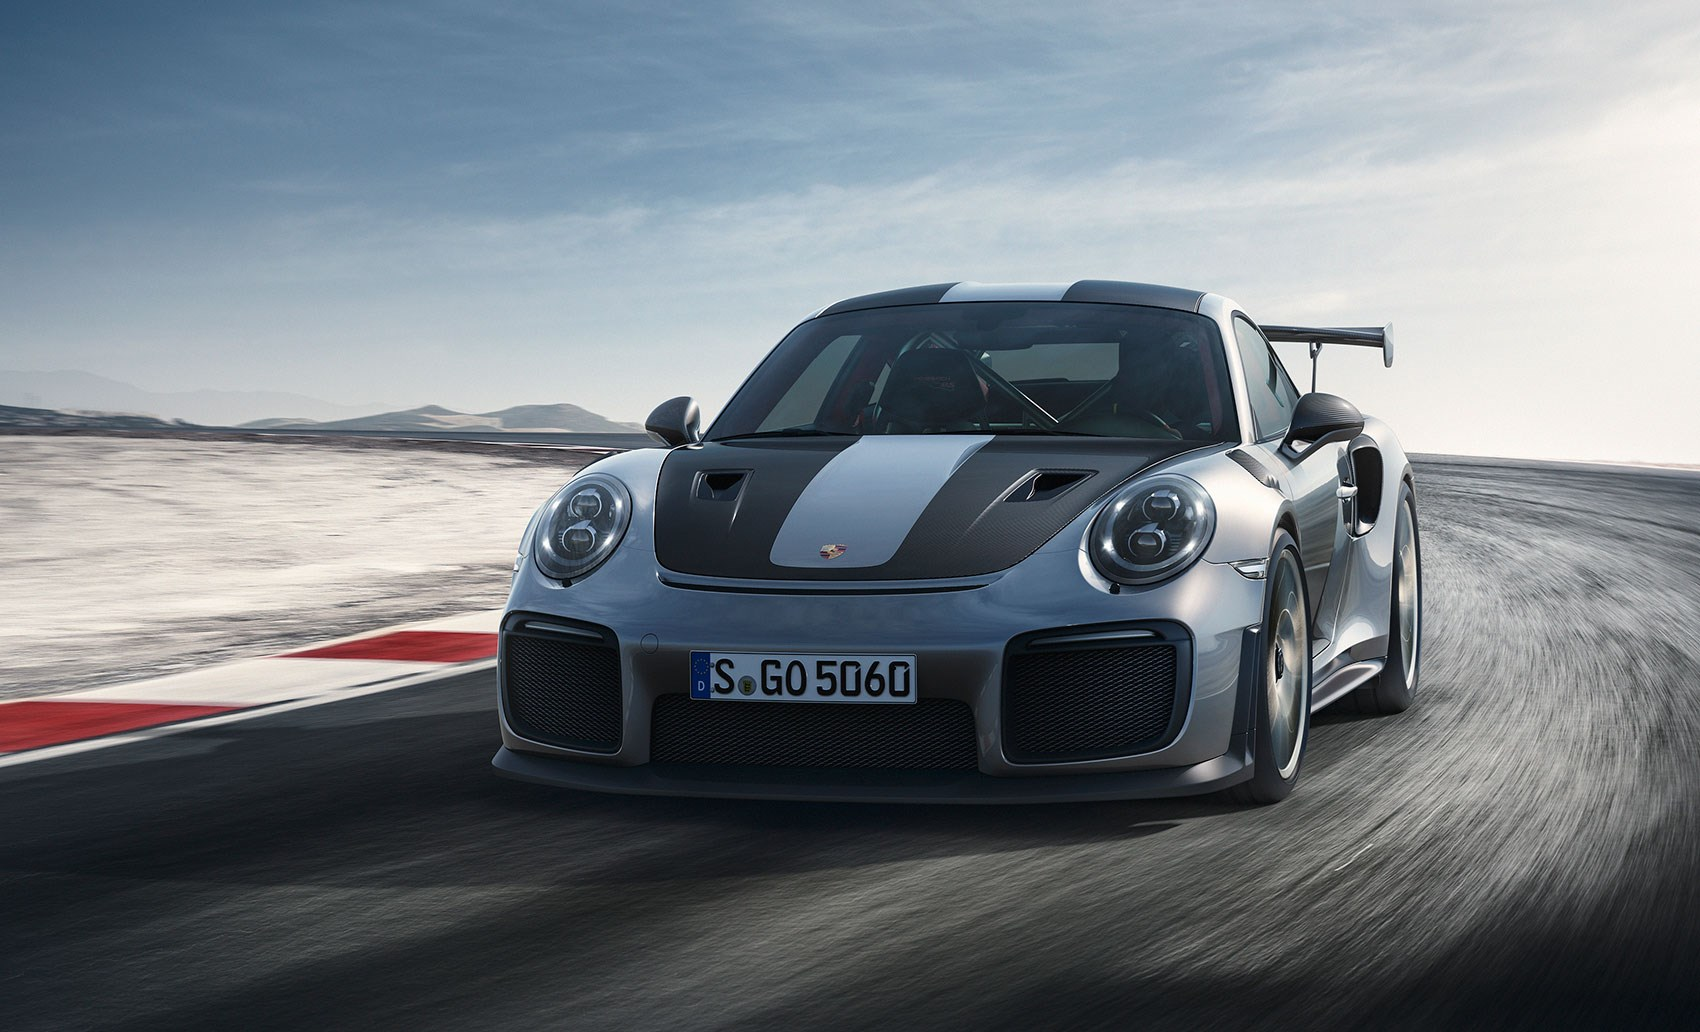 porsche 911 gt2 rs 2018 pictures specs and info by car magazine. Black Bedroom Furniture Sets. Home Design Ideas